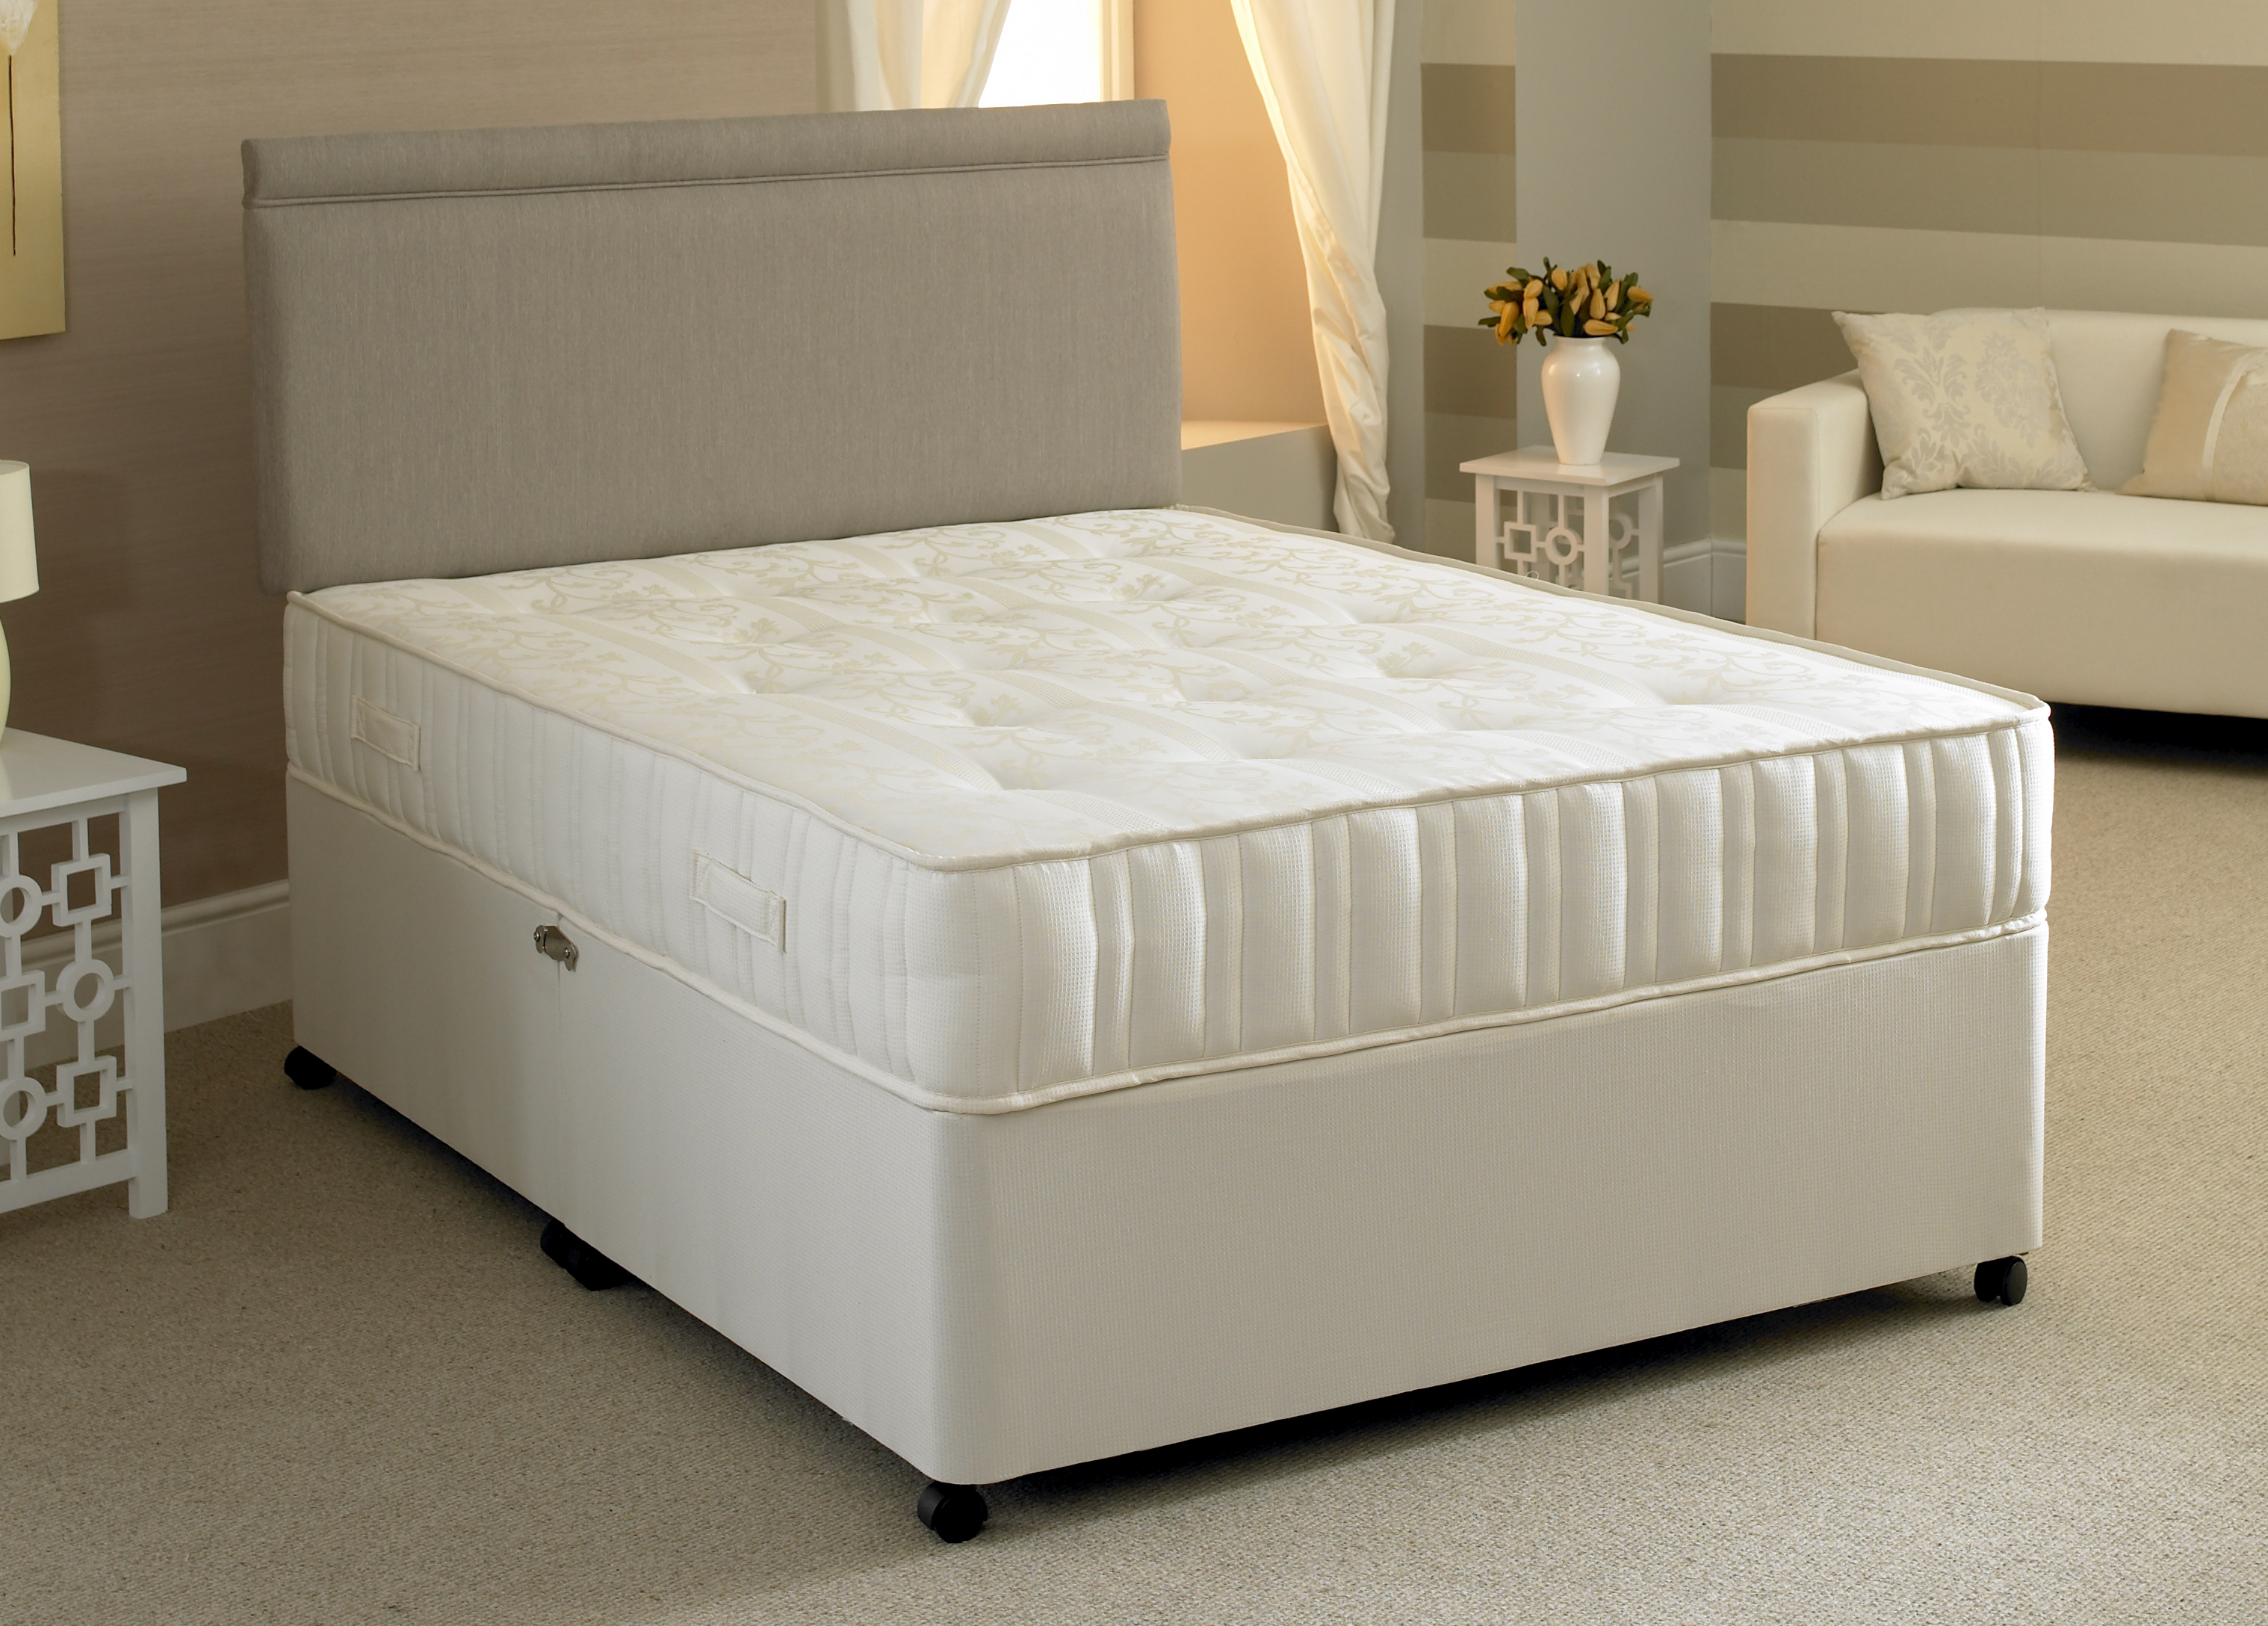 Hotel Classic Divan Bed Bishops Beds Contract Furniture